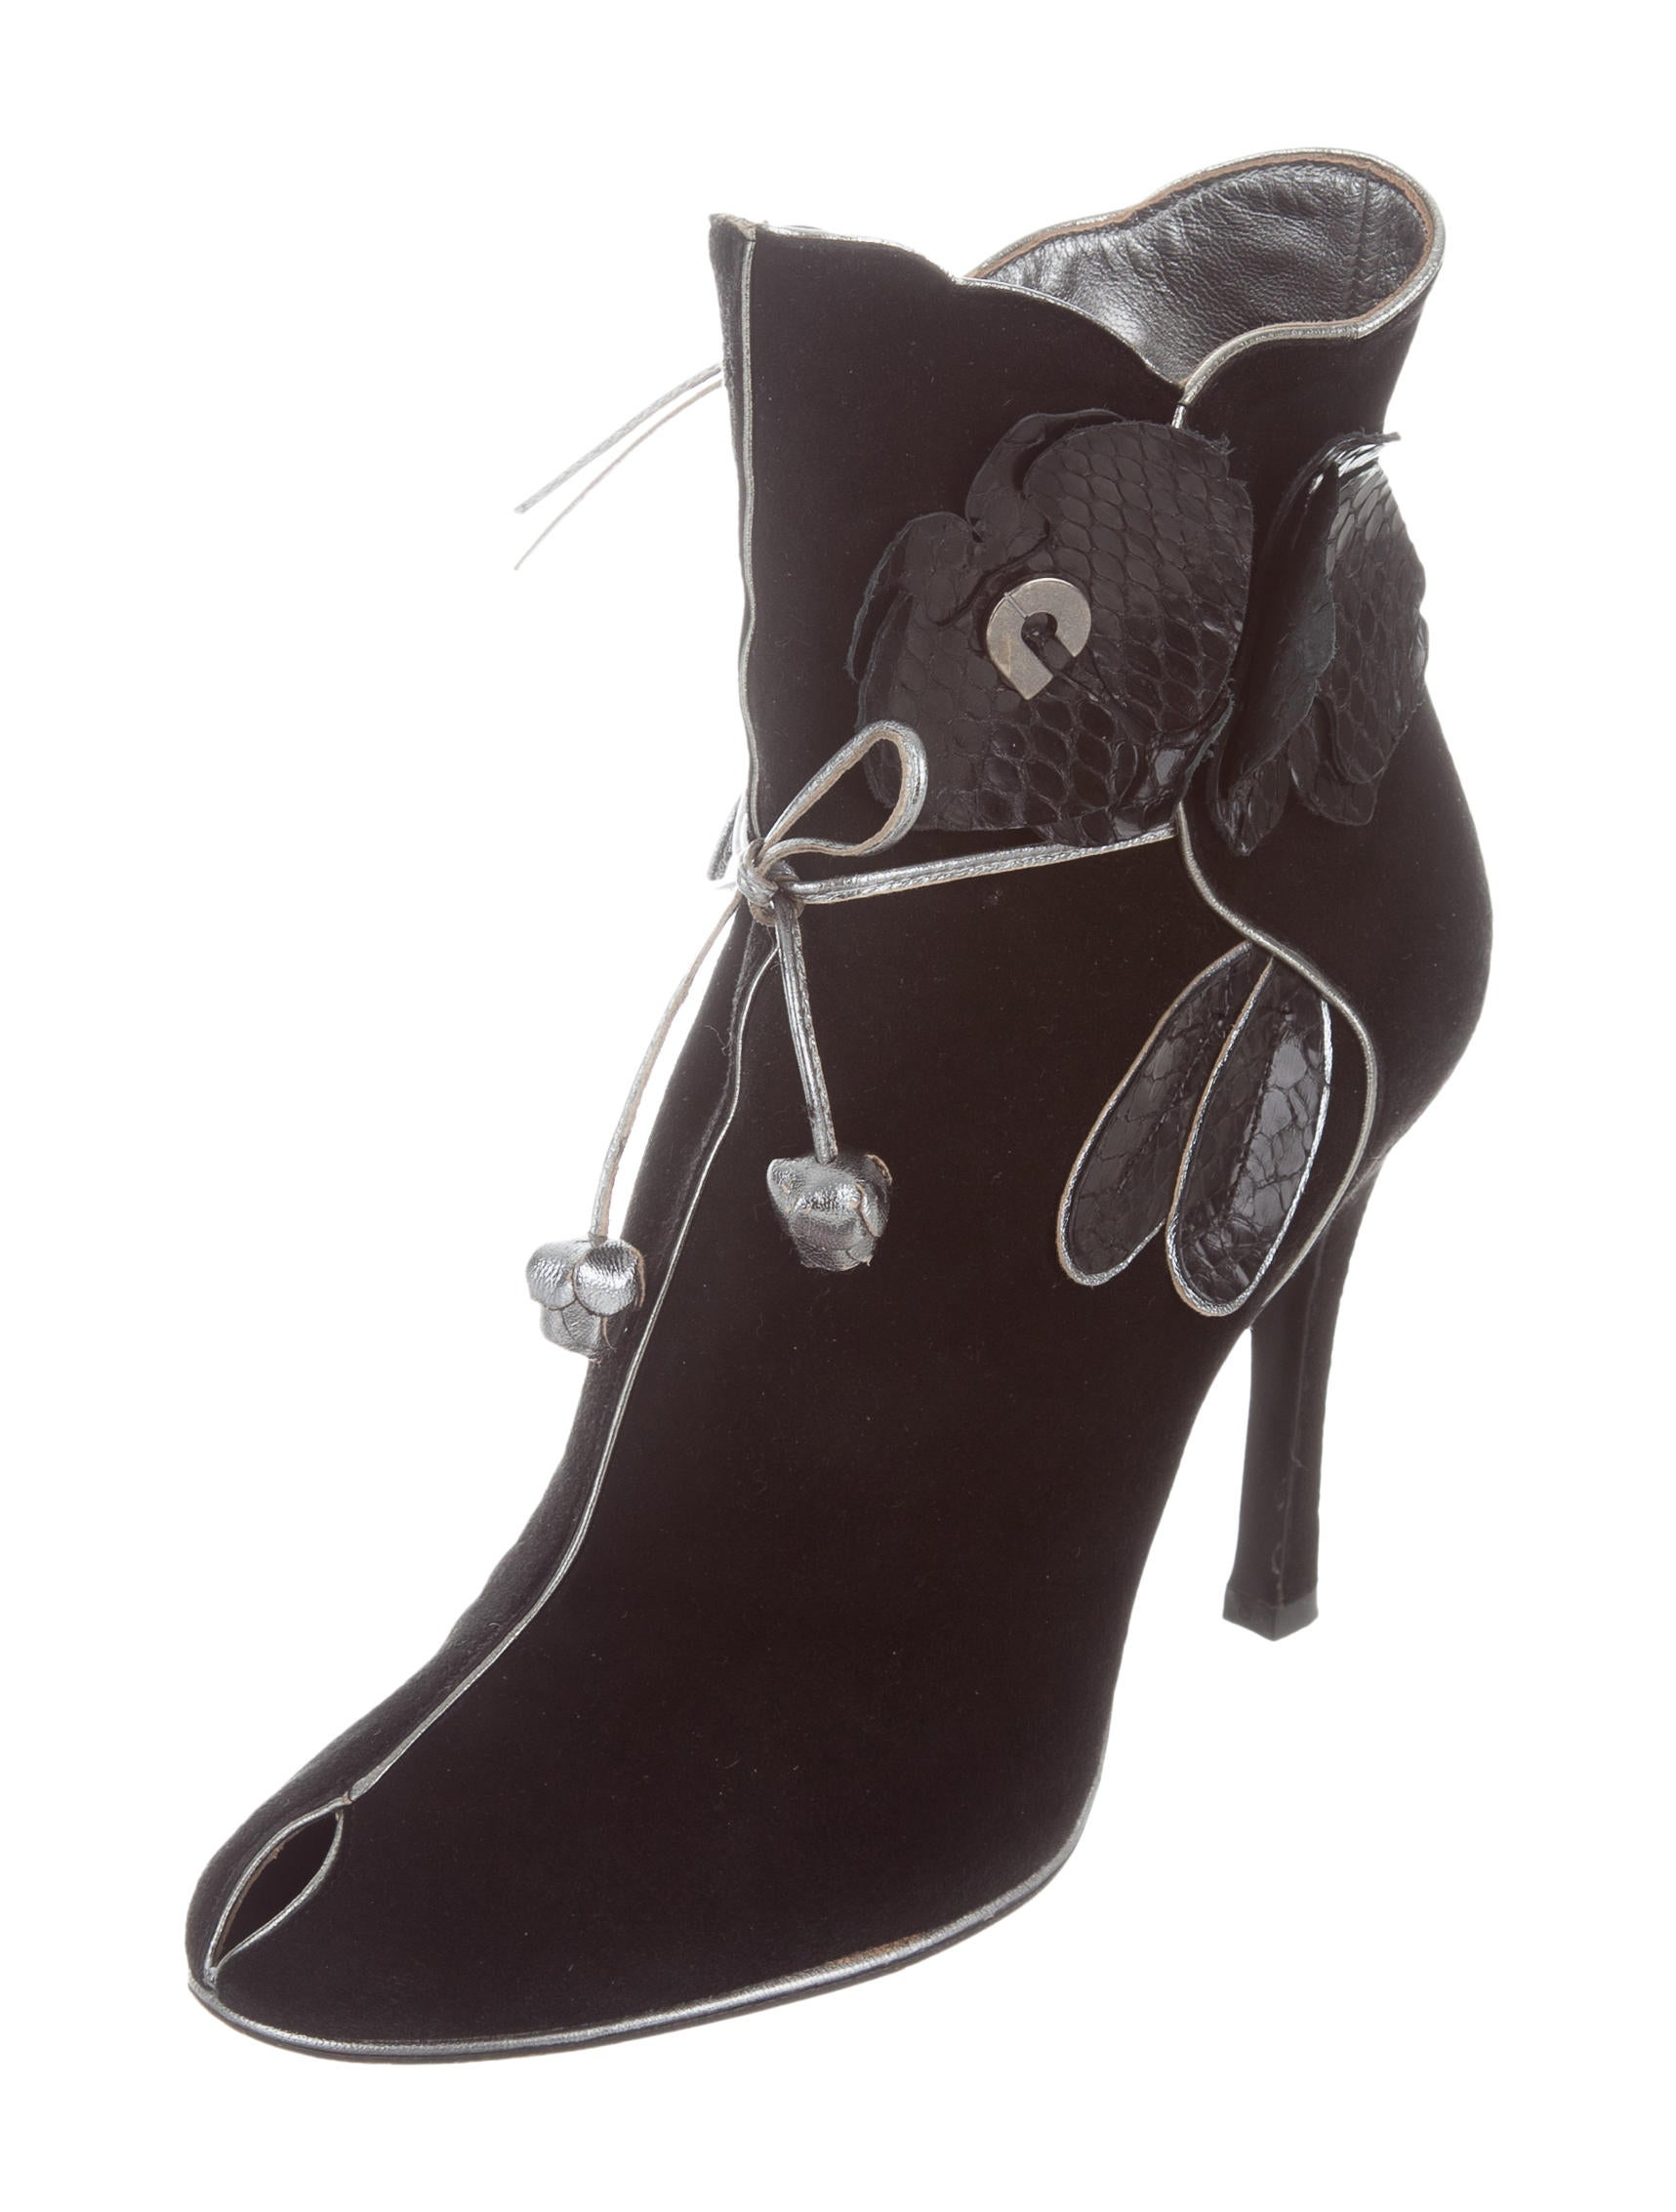 charles jourdan suede peep toe ankle boots shoes